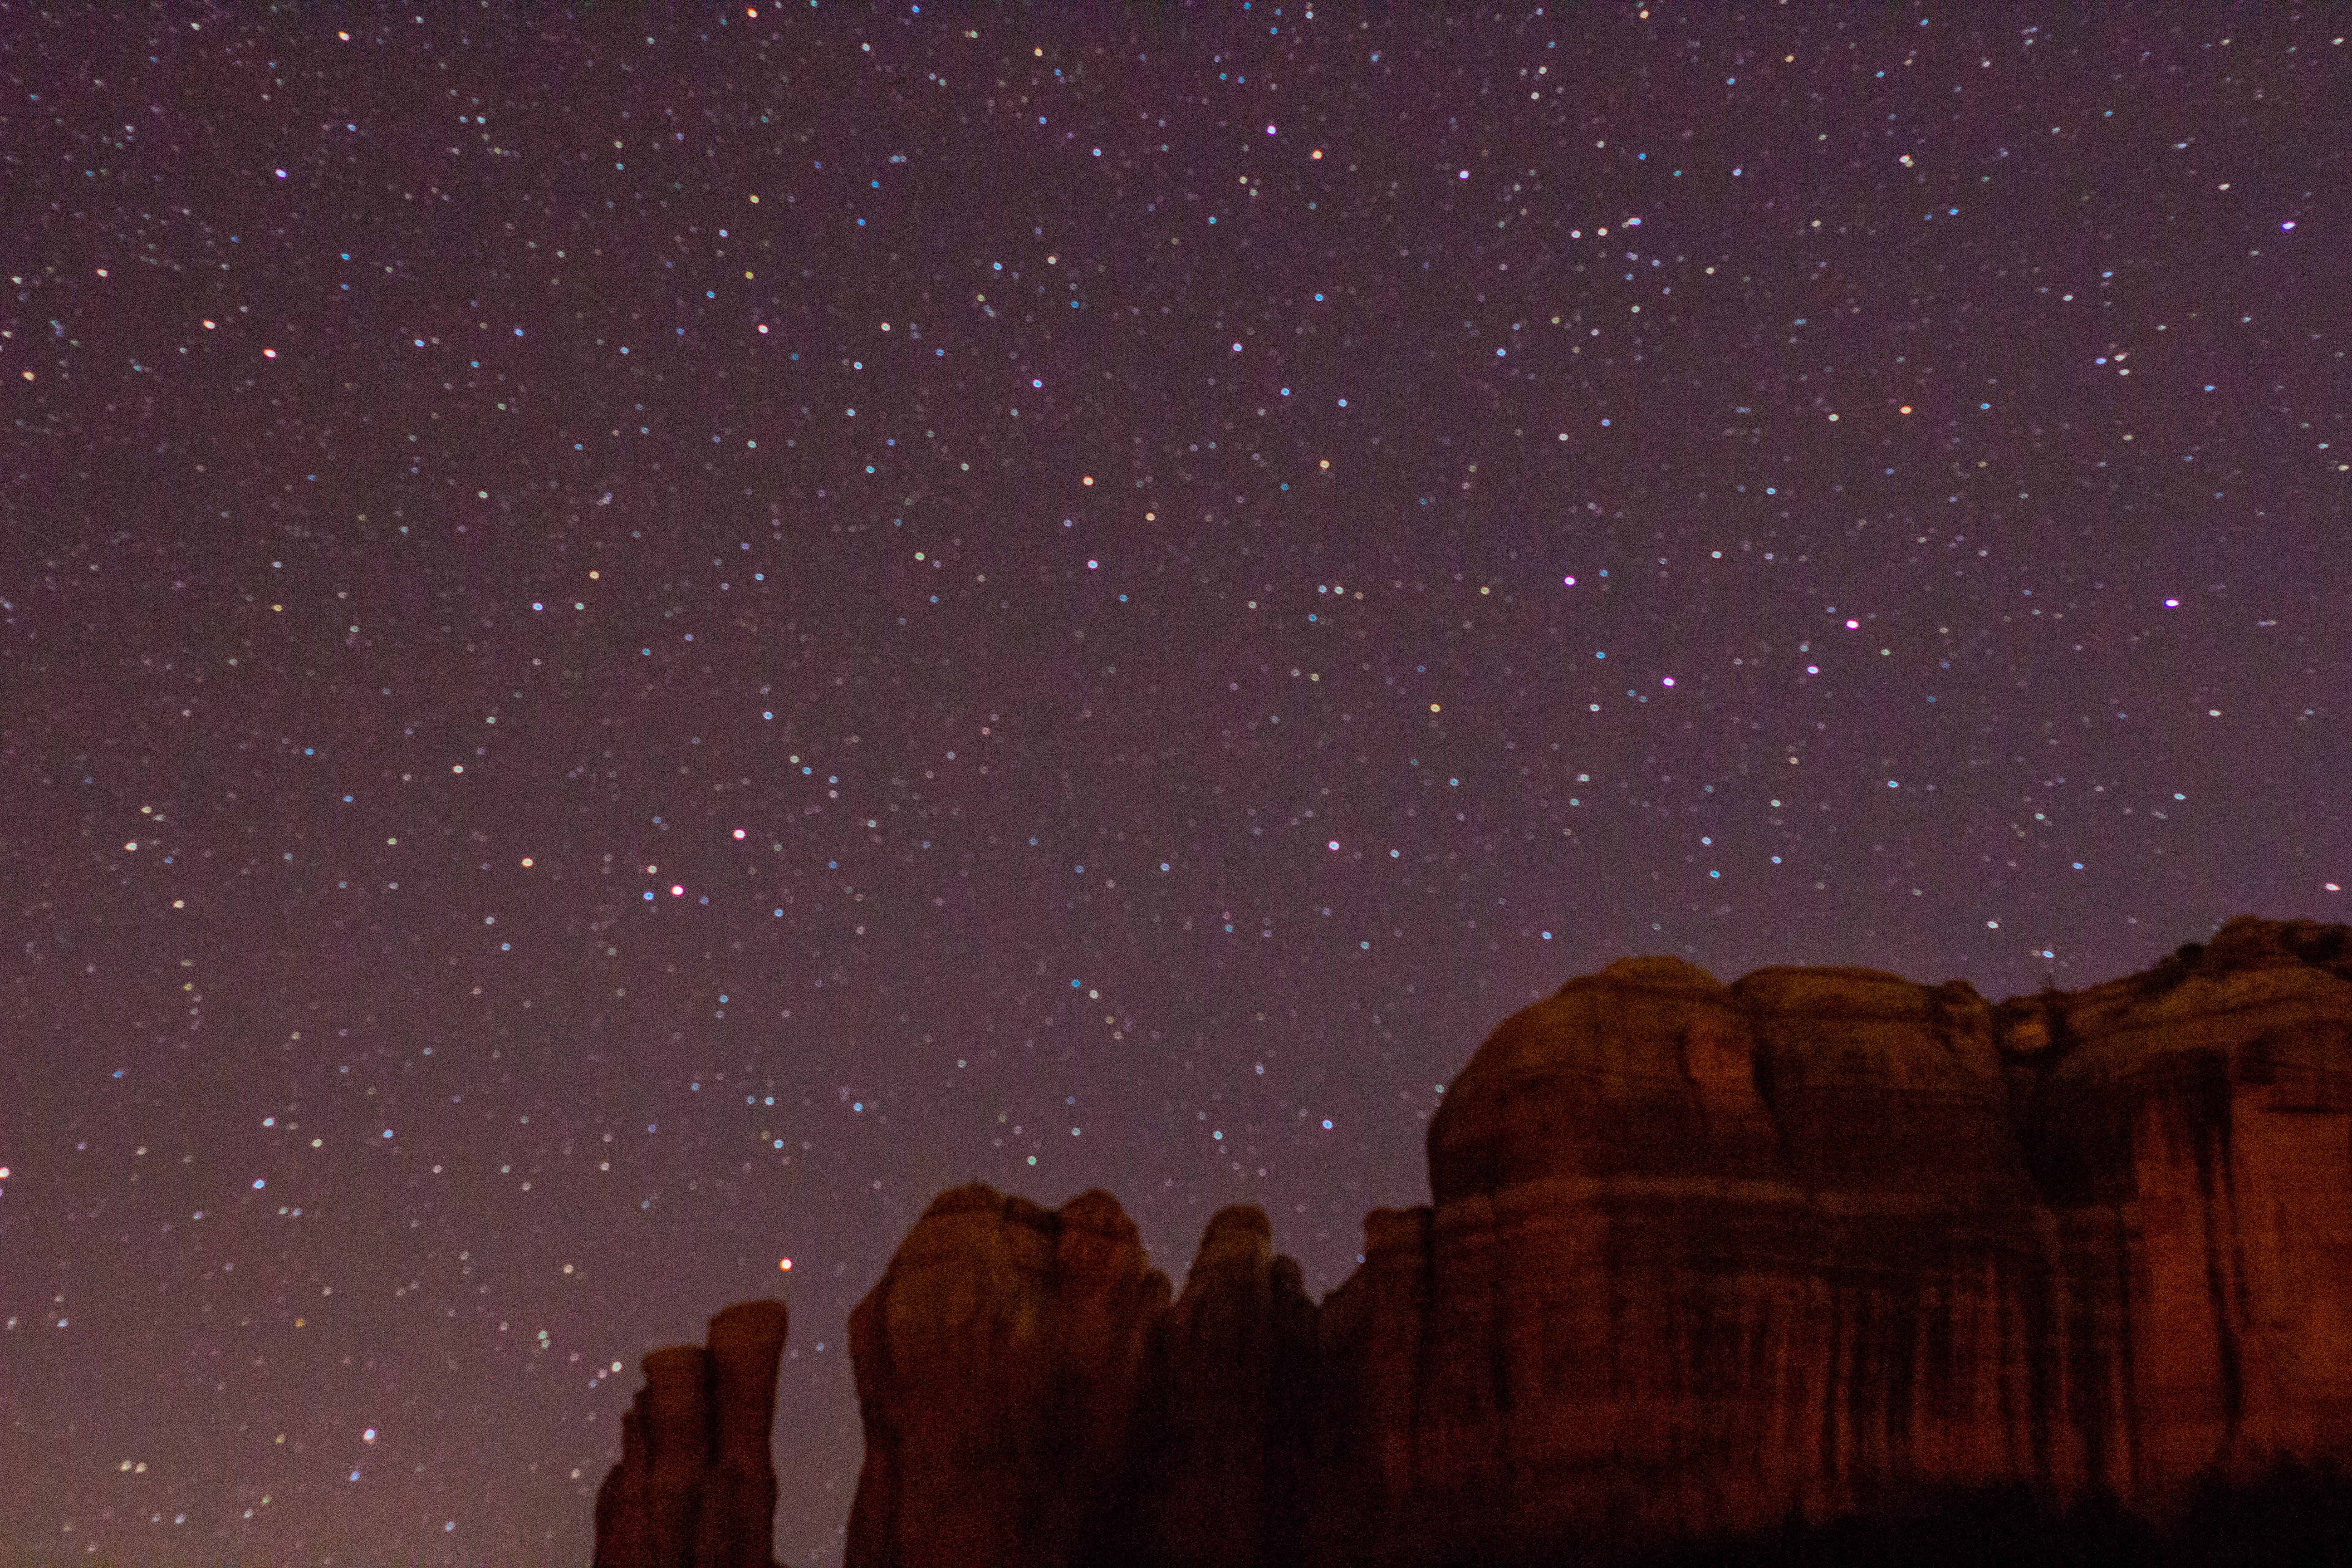 rock formation under gray sky with stars during night time